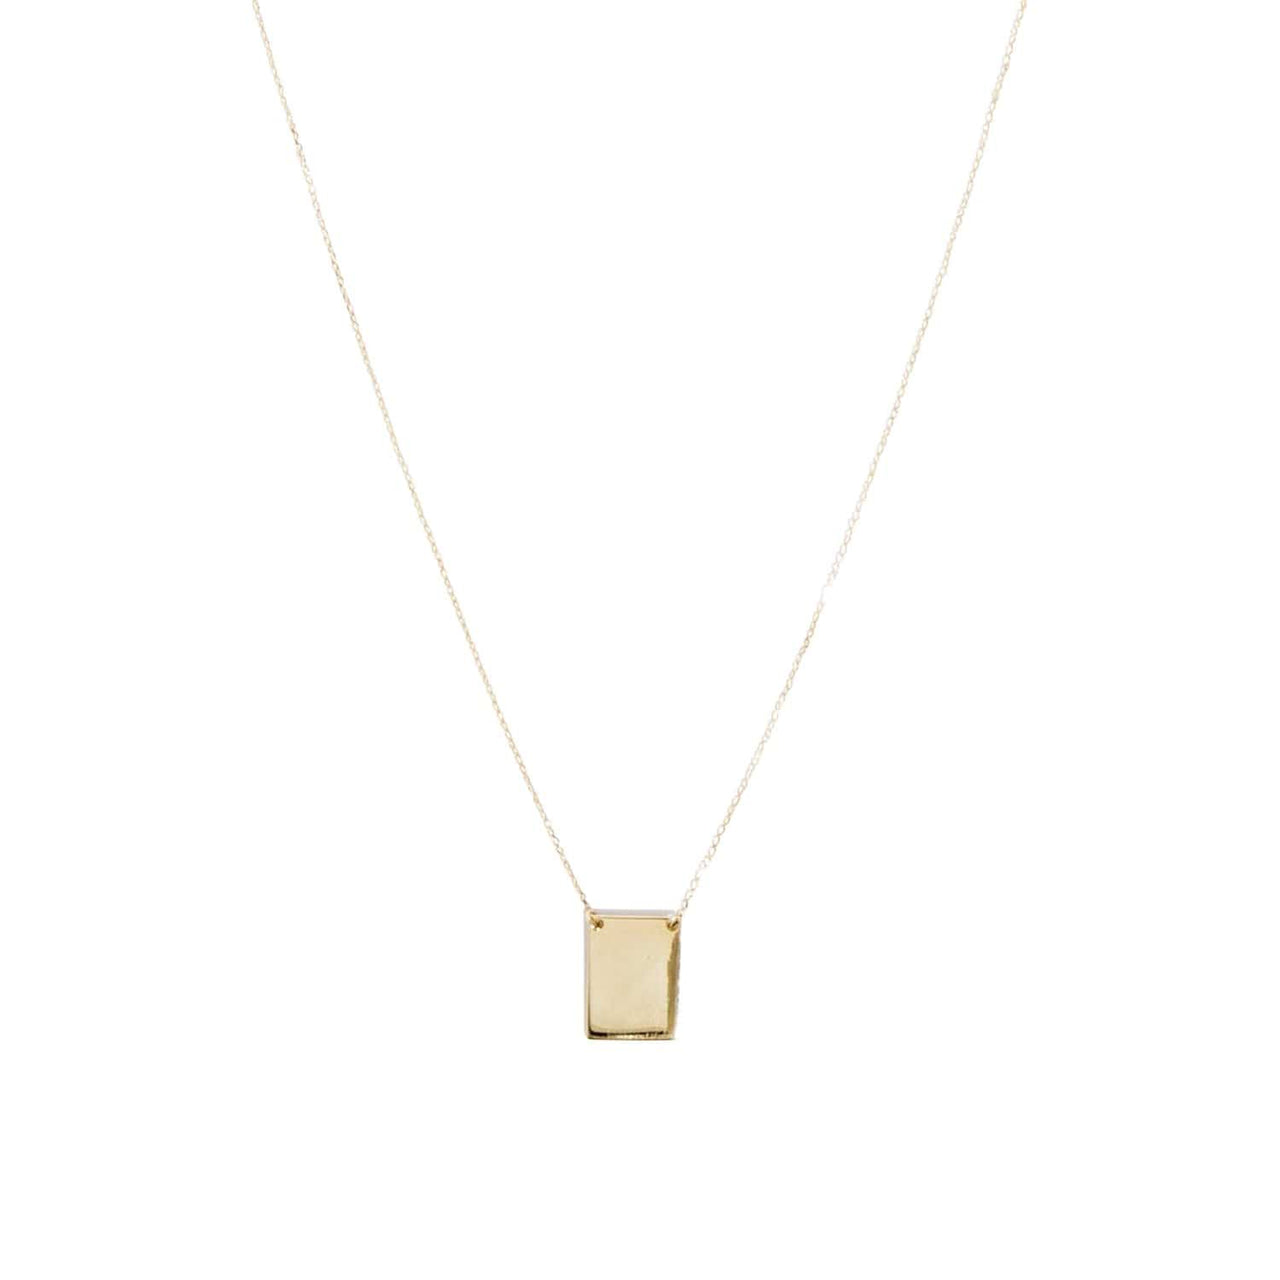 AMARILO Necklaces 14k yellow gold Square Pendant Necklace